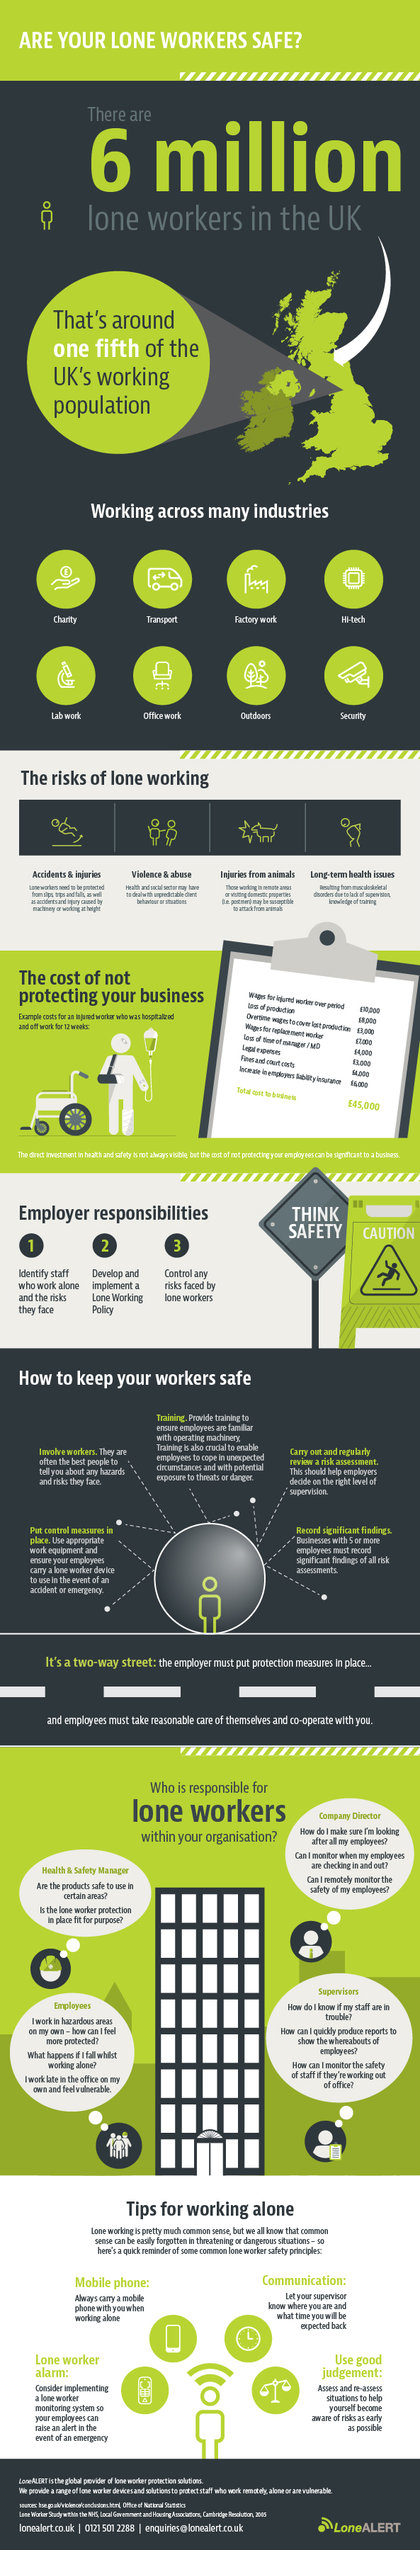 Infographic | Creating a safe workplace for your lone workers #HealthAndSafety